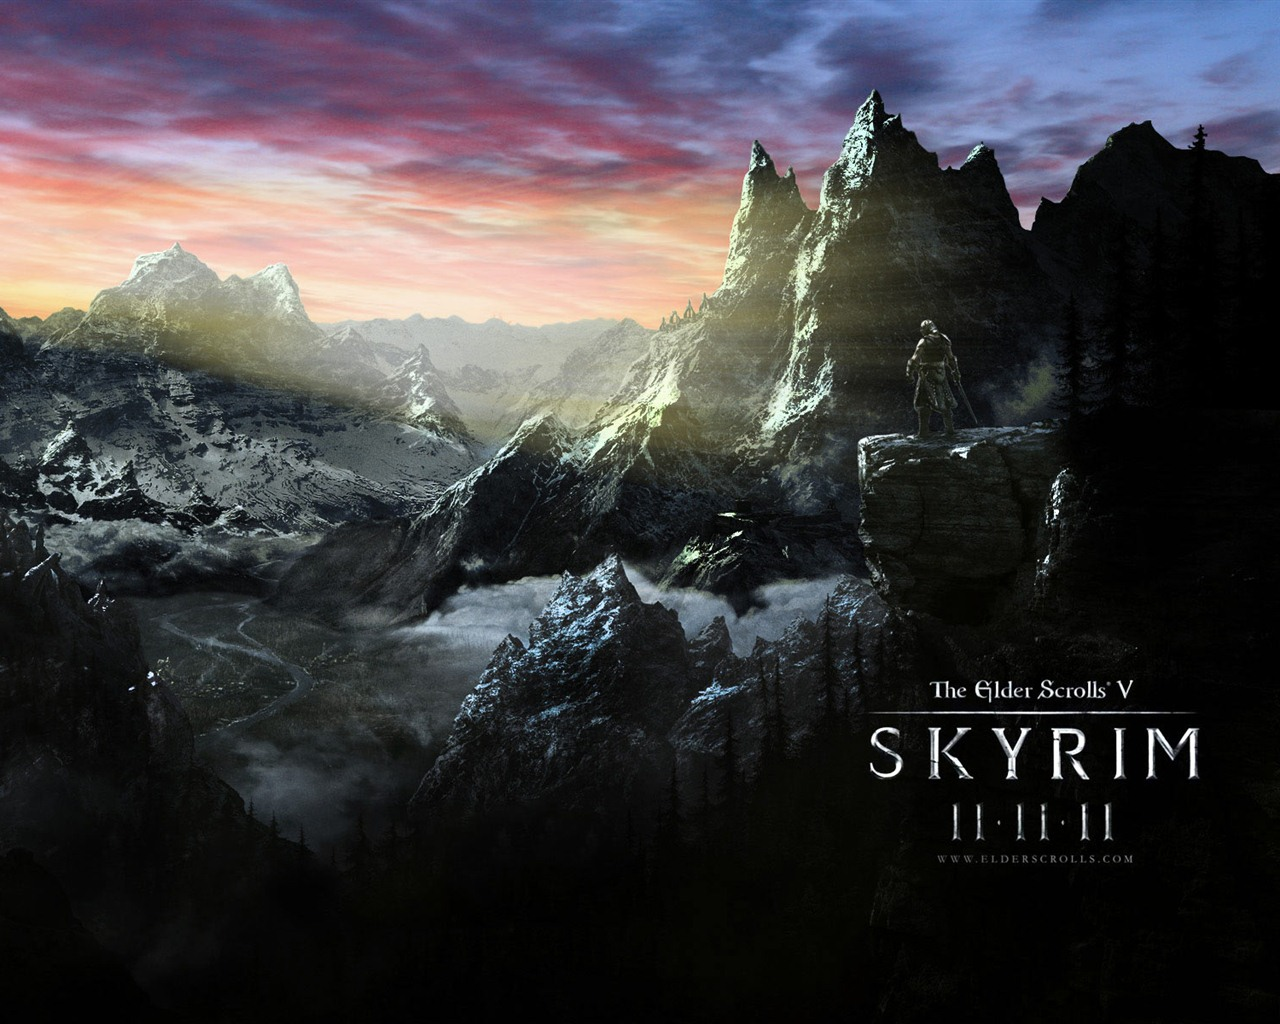 the elder scrolls v: skyrim hd wallpapers #15 - 1280x1024 wallpaper